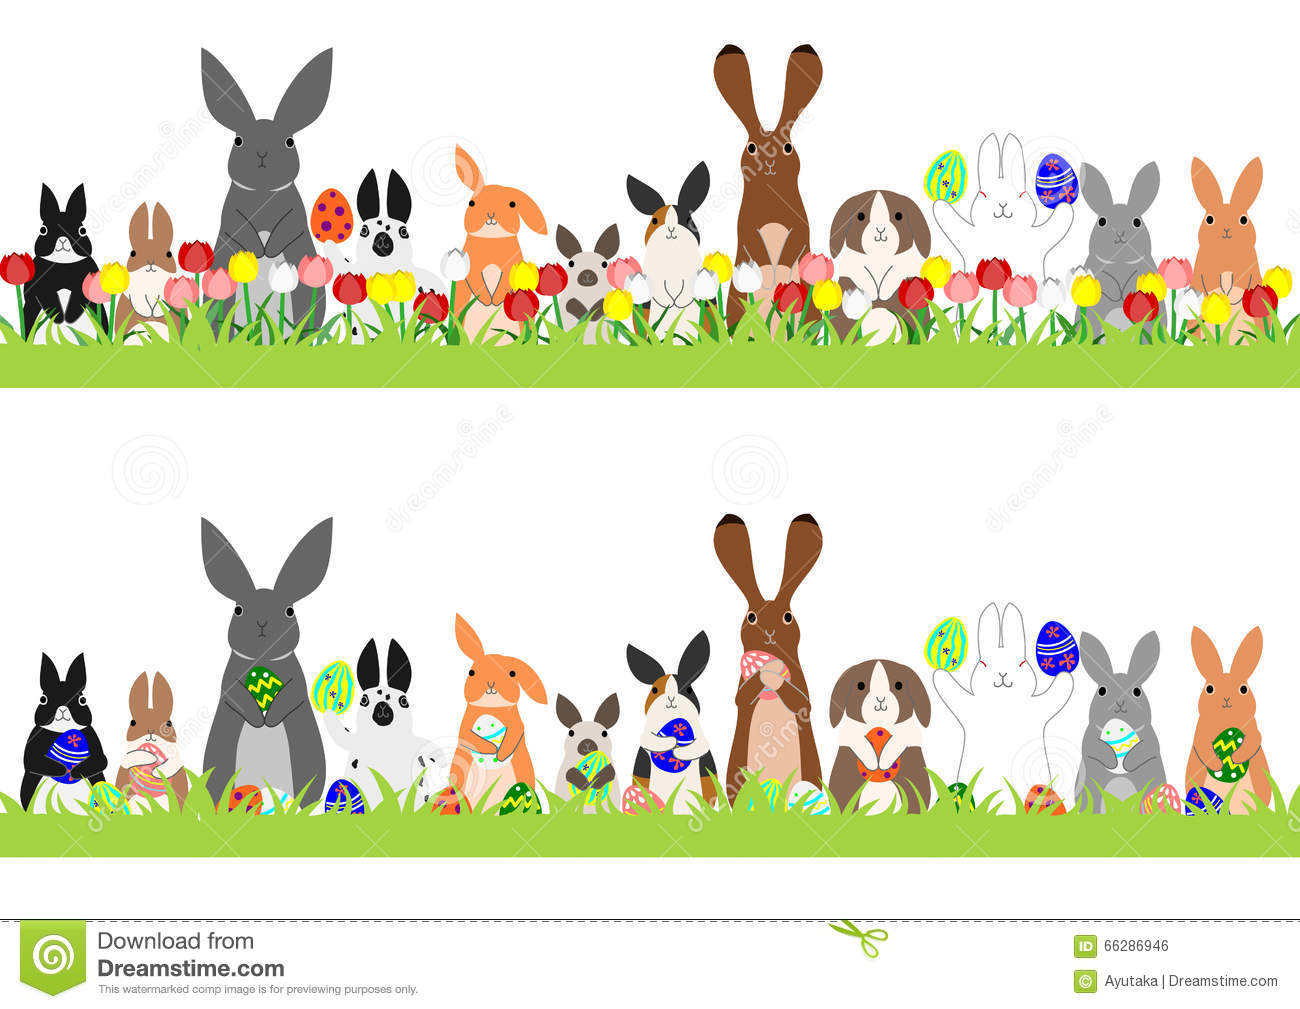 Easter row clipart image Set Of Easter Bunnies In A Row Stock Vector - Image: 66286946 image